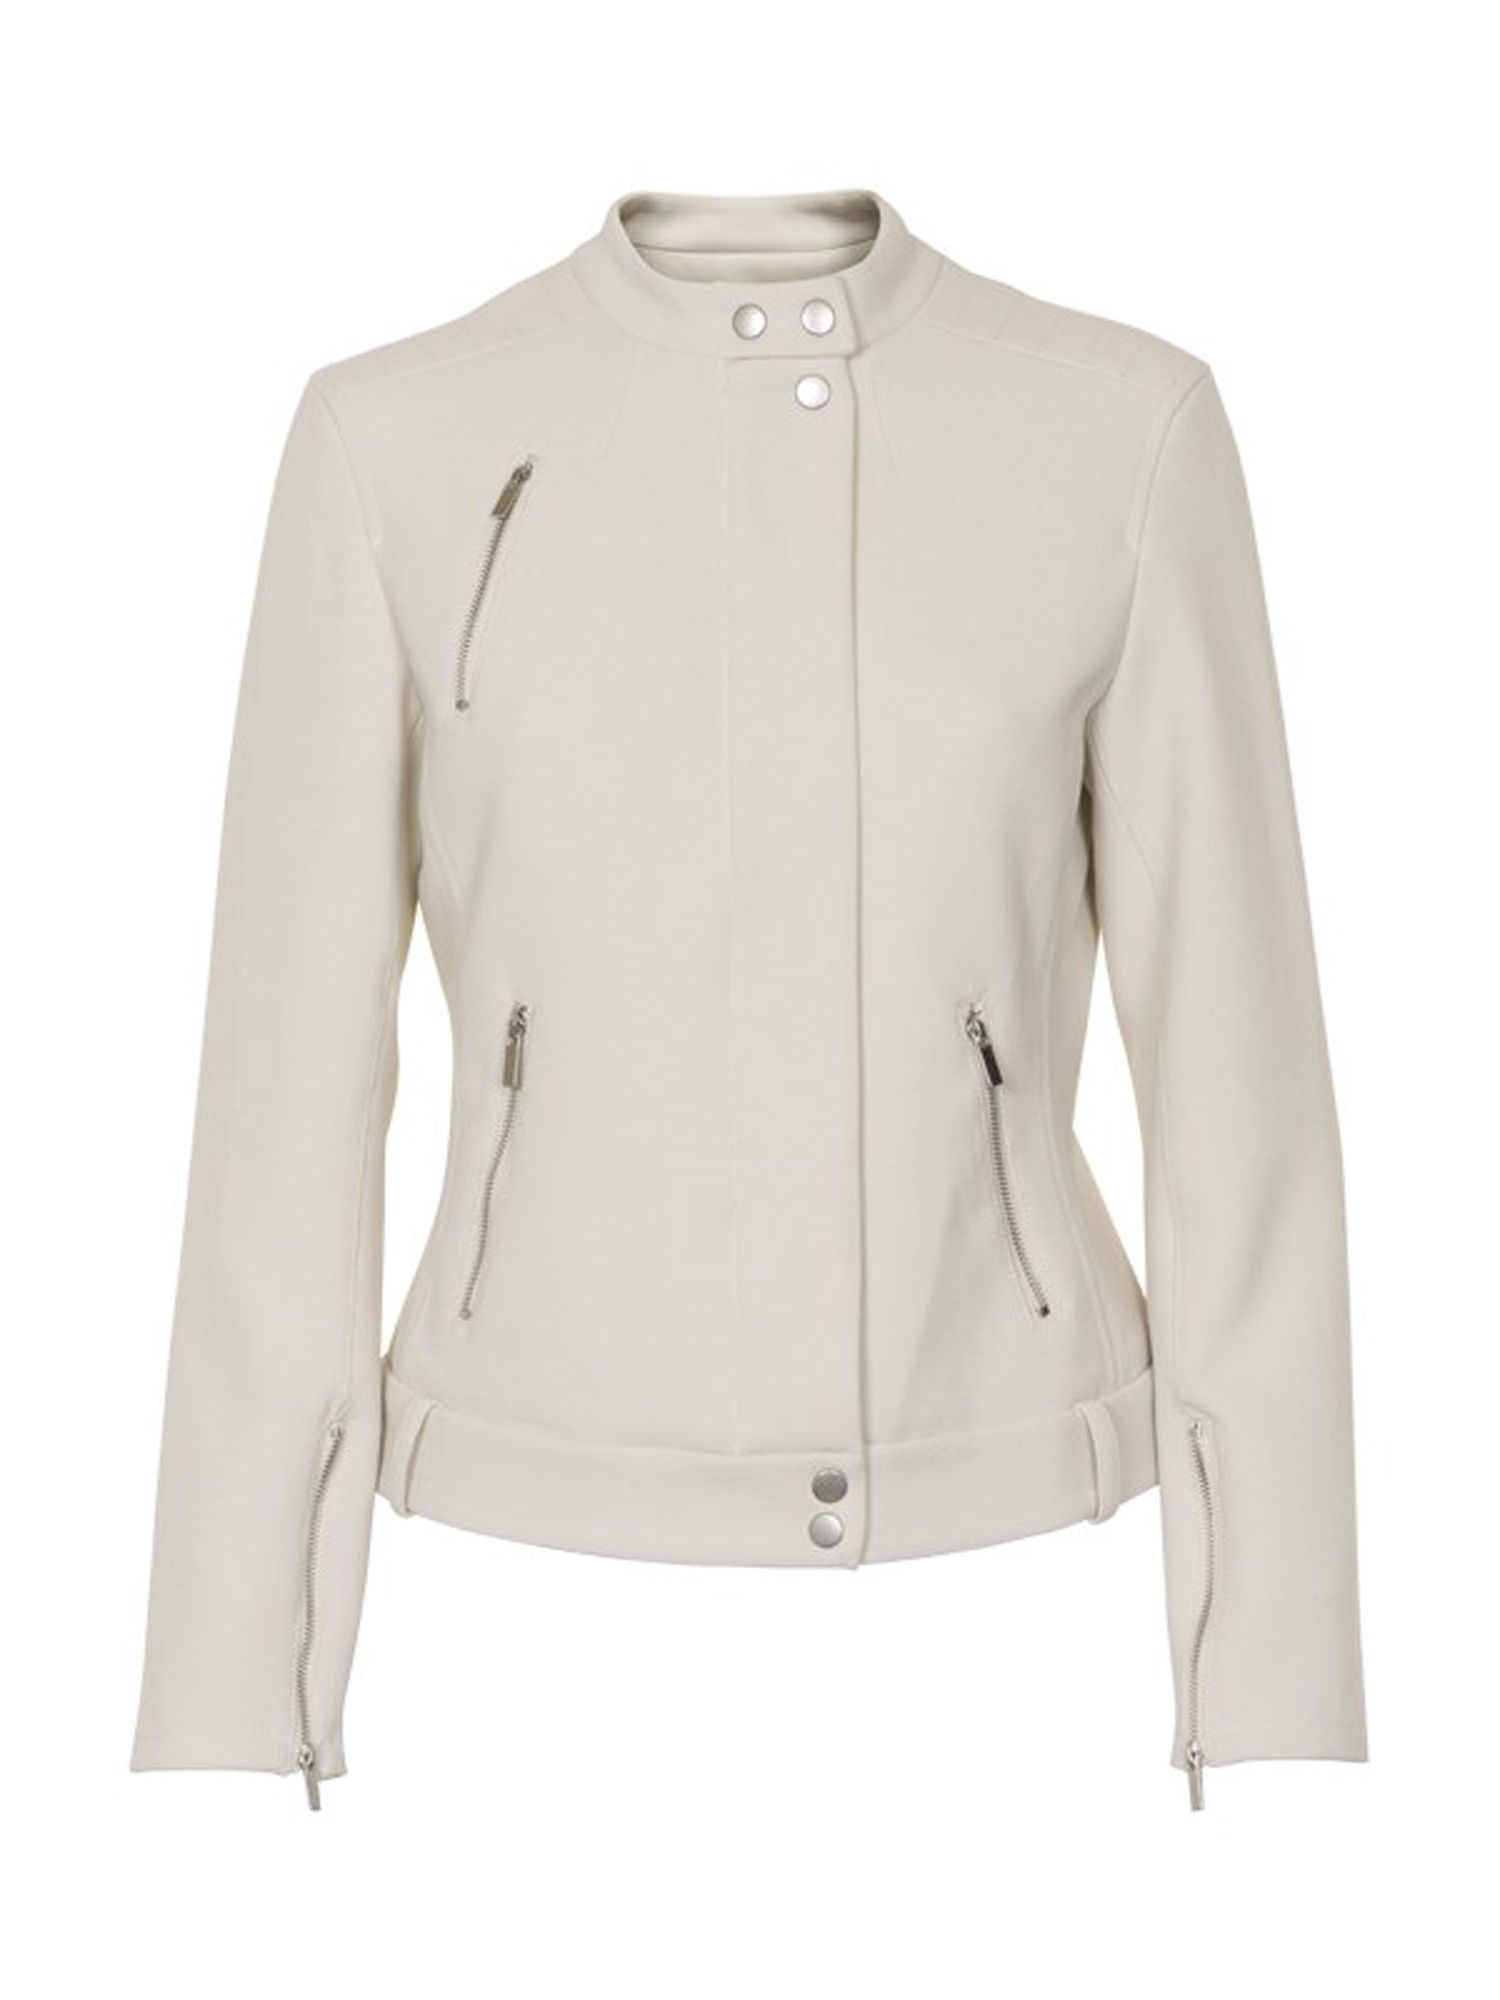 Corella jacket